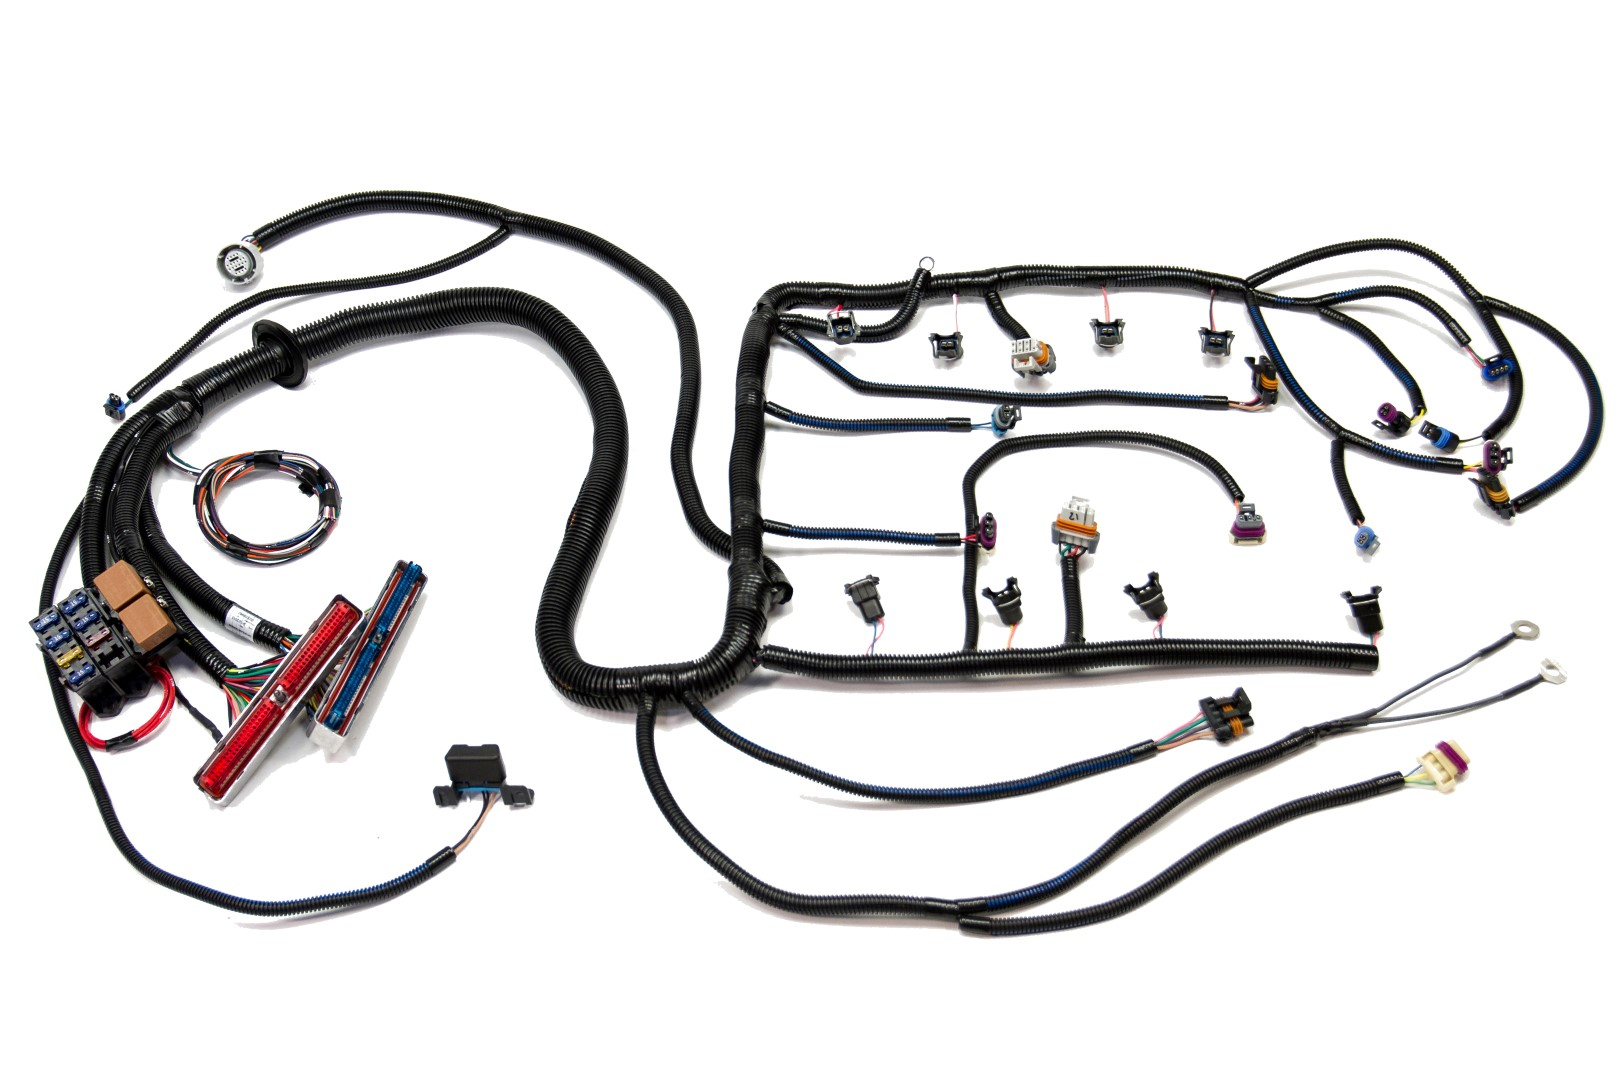 HAR 1012 psi standalone wiring harness ls wiring ls wiring harness performance systems integration wiring harness at mr168.co